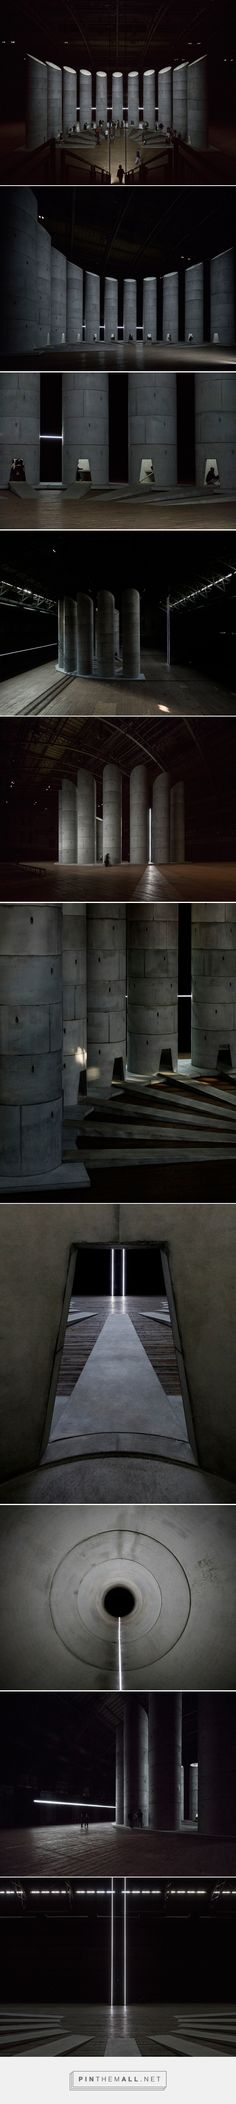 OMA + taryn simon install concrete wells for mourners in NY - created via…